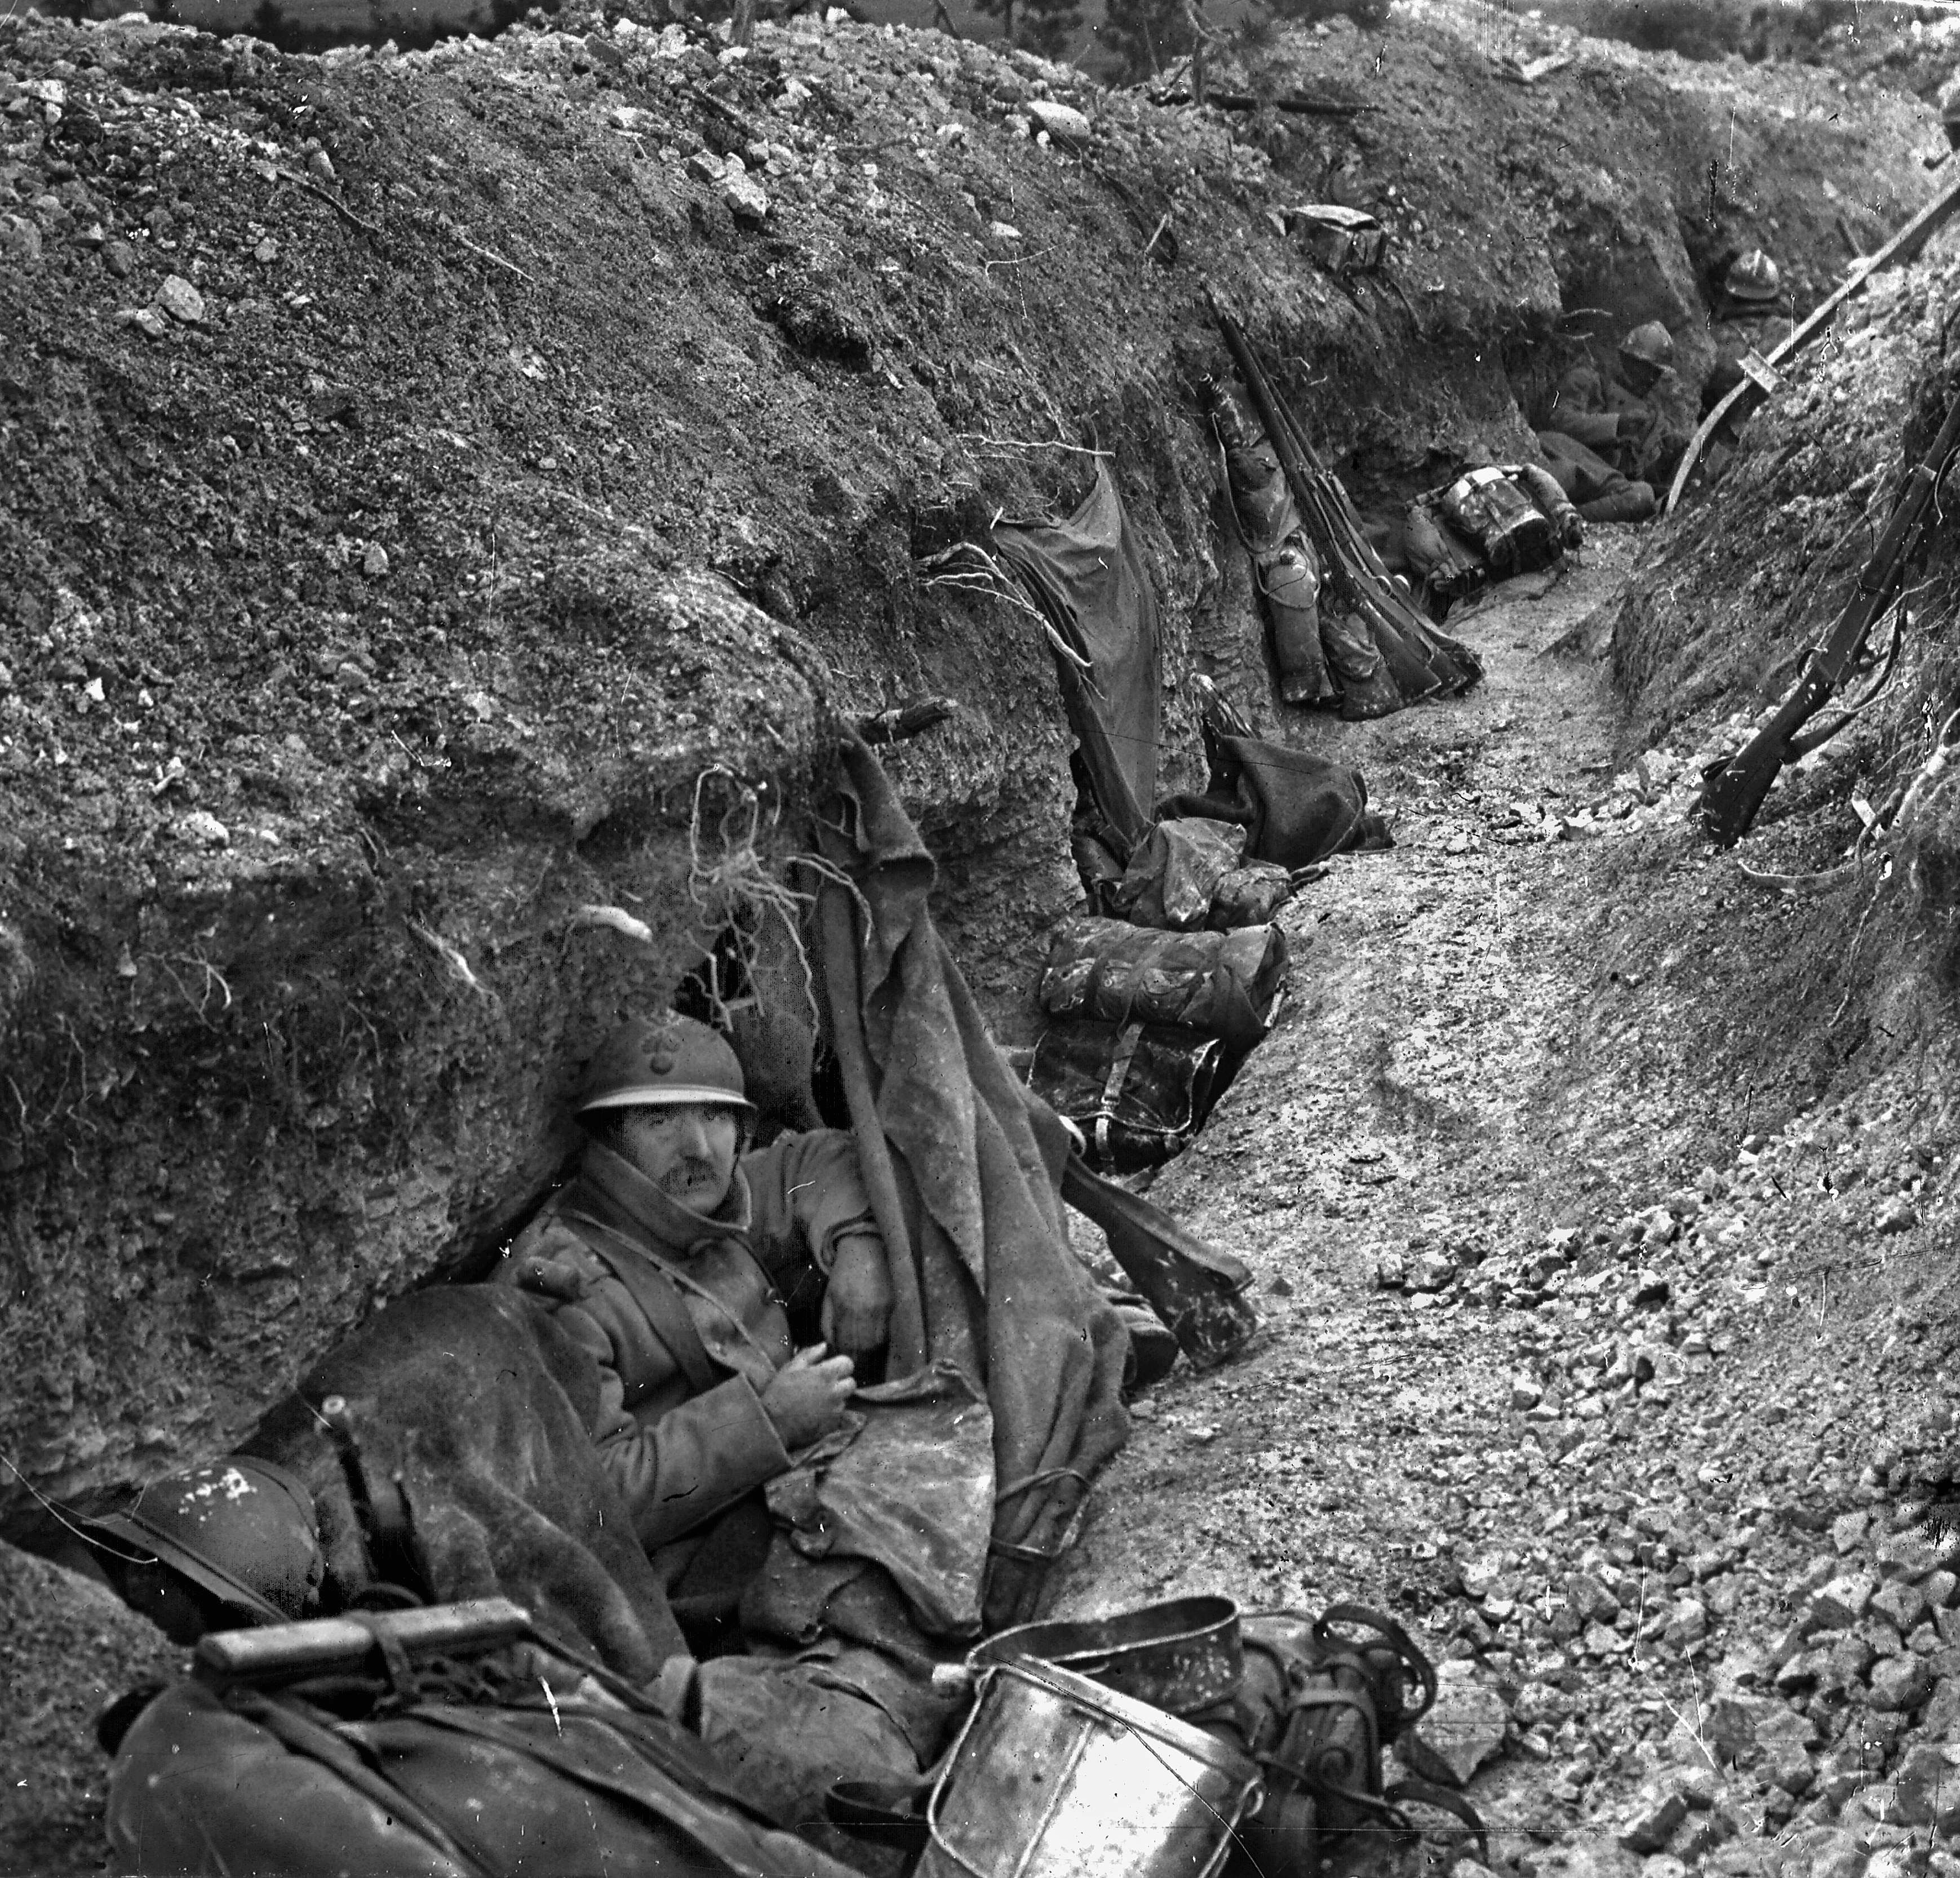 Soldiers in the trenches during world war one battle of verdun verdun the blood pump of the world a german operation intending to grind french forces into oblivion became one of the defining battles of world war i publicscrutiny Image collections